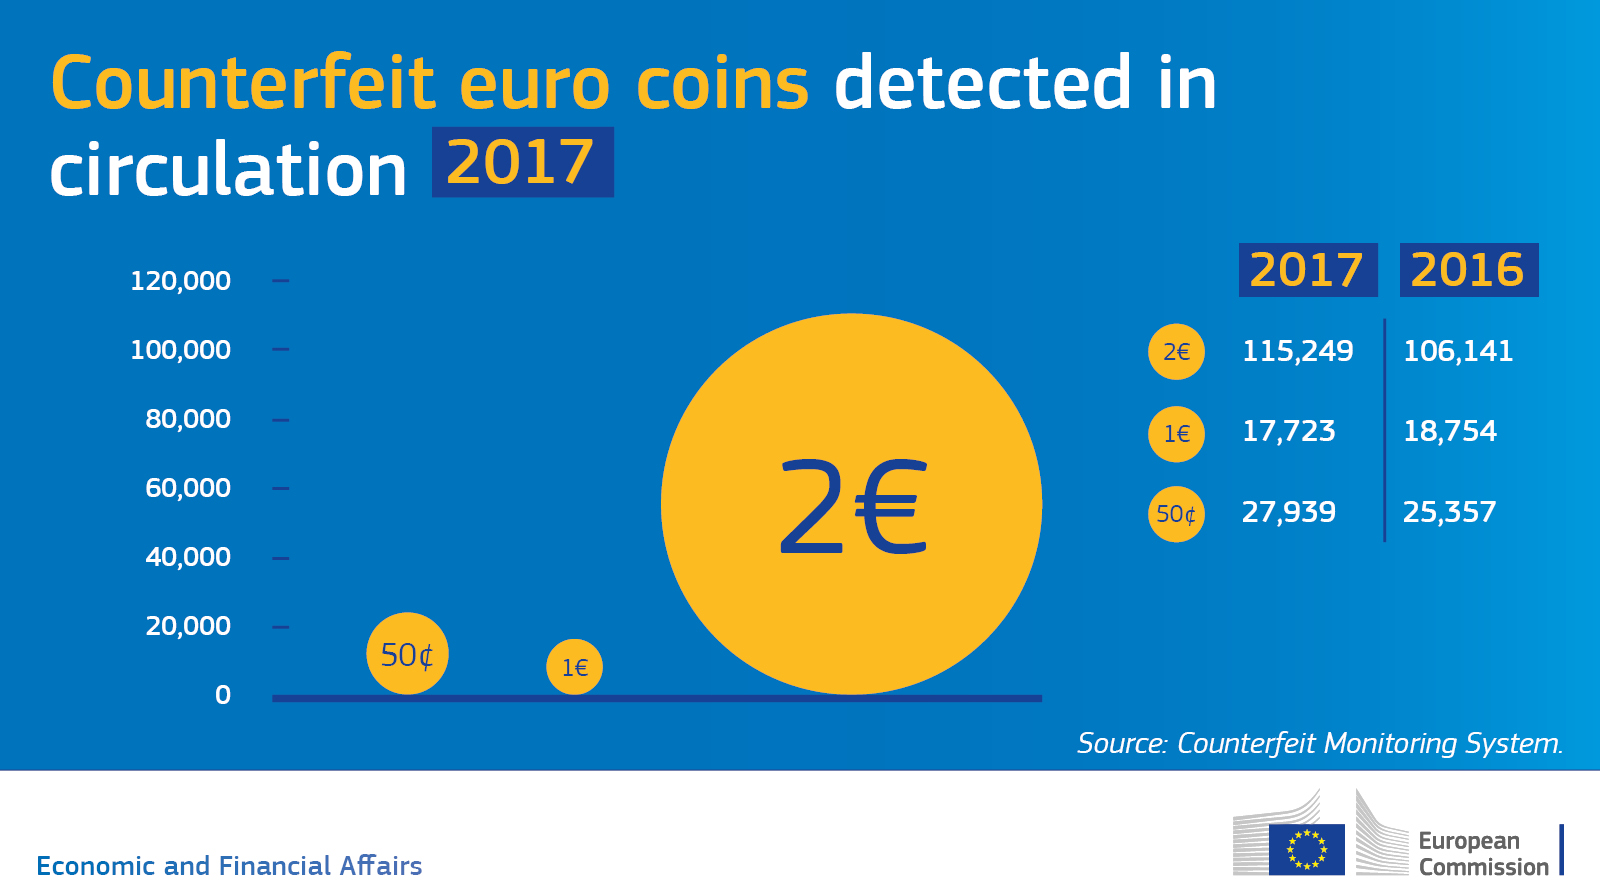 EU-wide progress on tackling euro coin counterfeiting in 2017